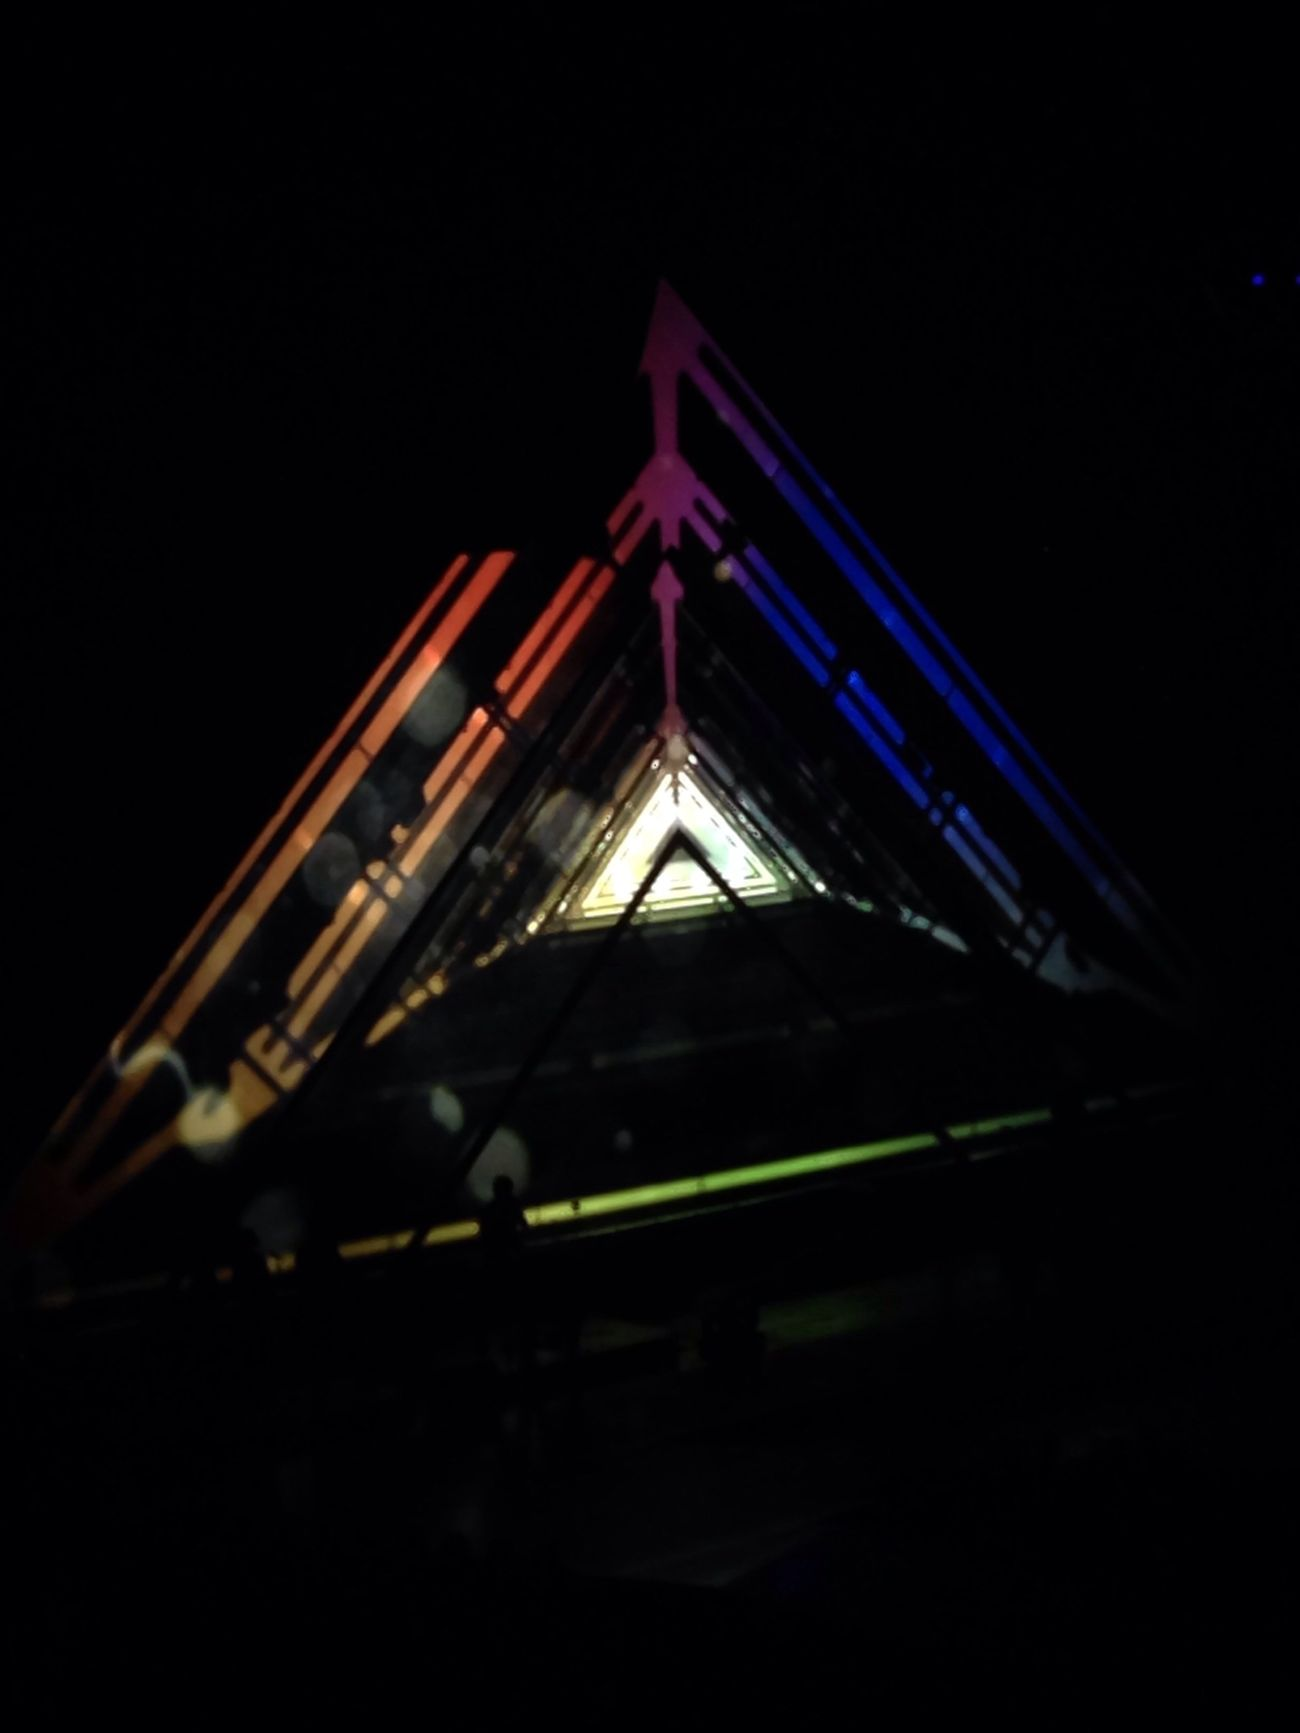 Light Up Your Life Prism Katy Perry